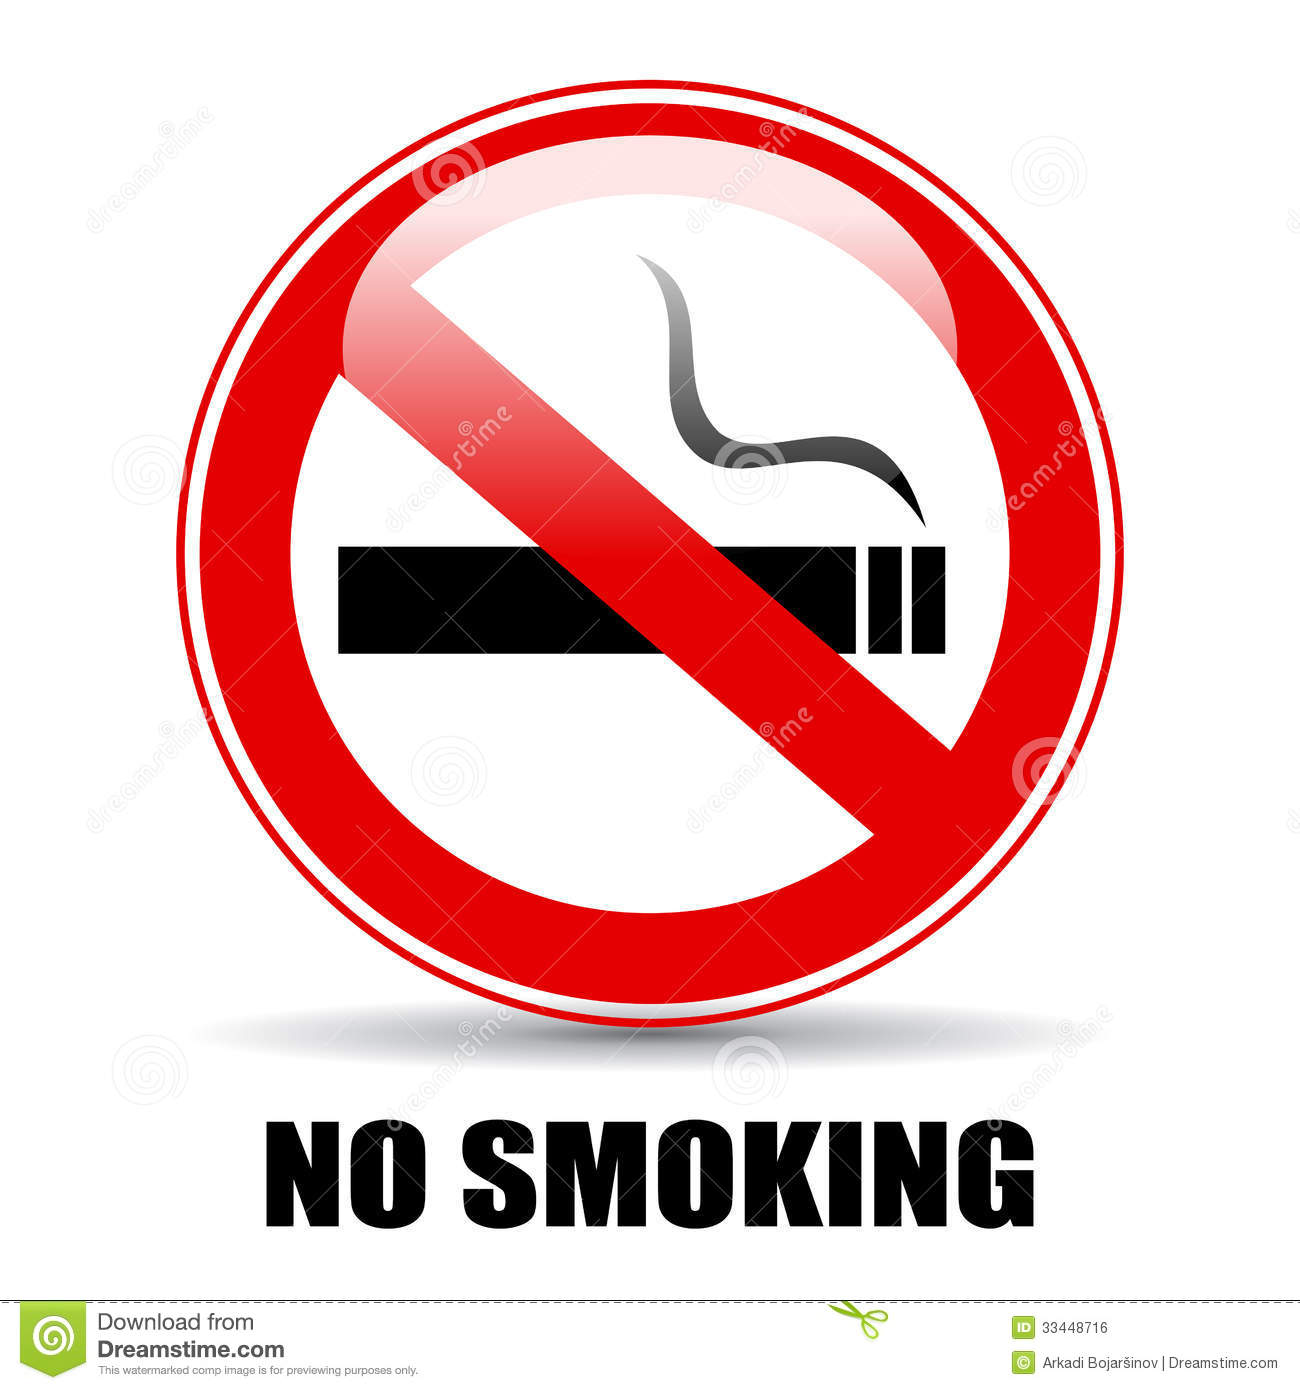 No Smoking Royalty Free Stock Image - Image: 33448716